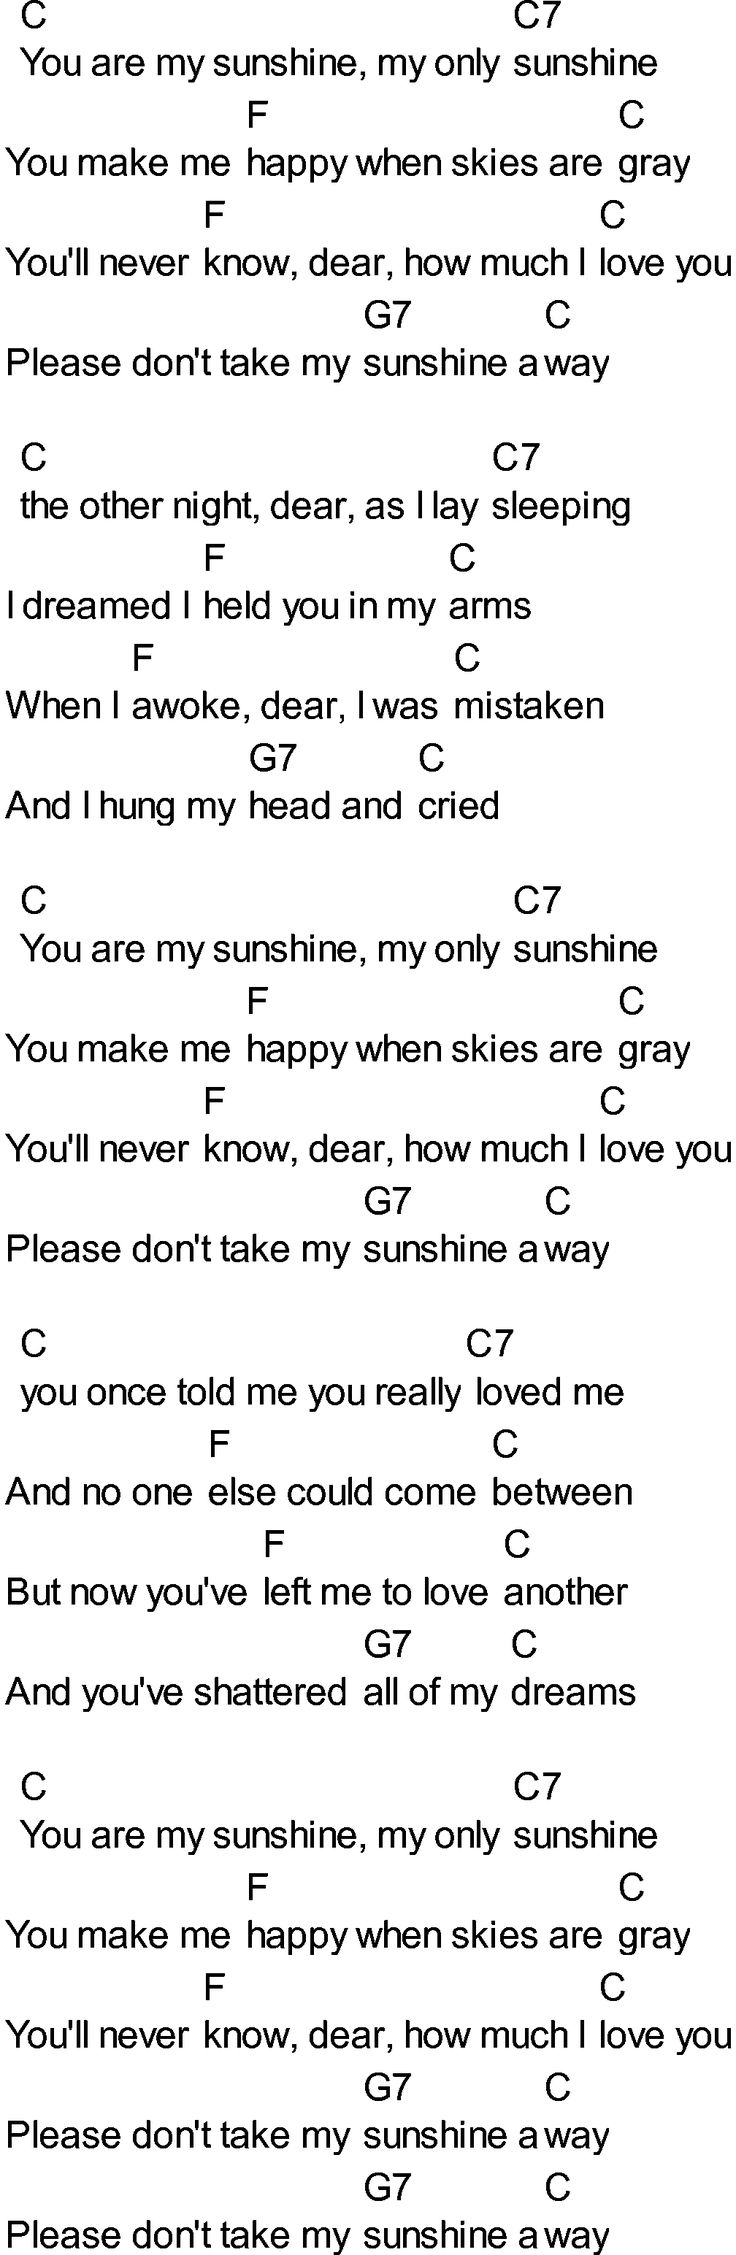 Bluegrass songs with chords - You Are My Sunshine